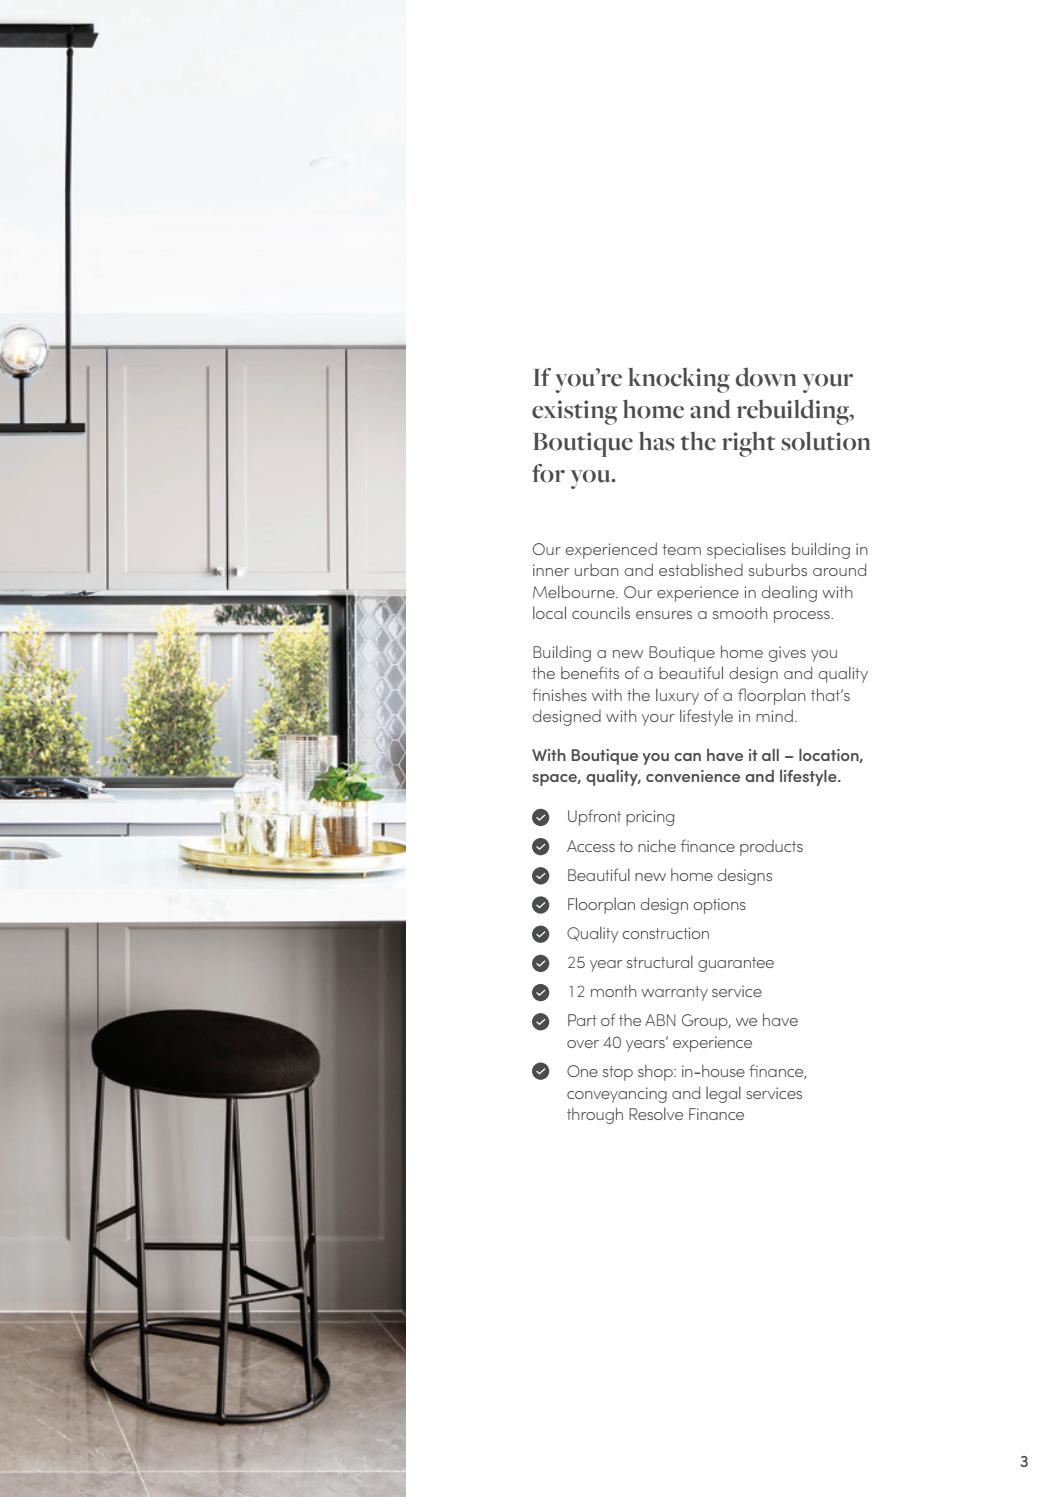 Boutique Homes Knockdown Rebuild Guide by Boutique Homes - issuu